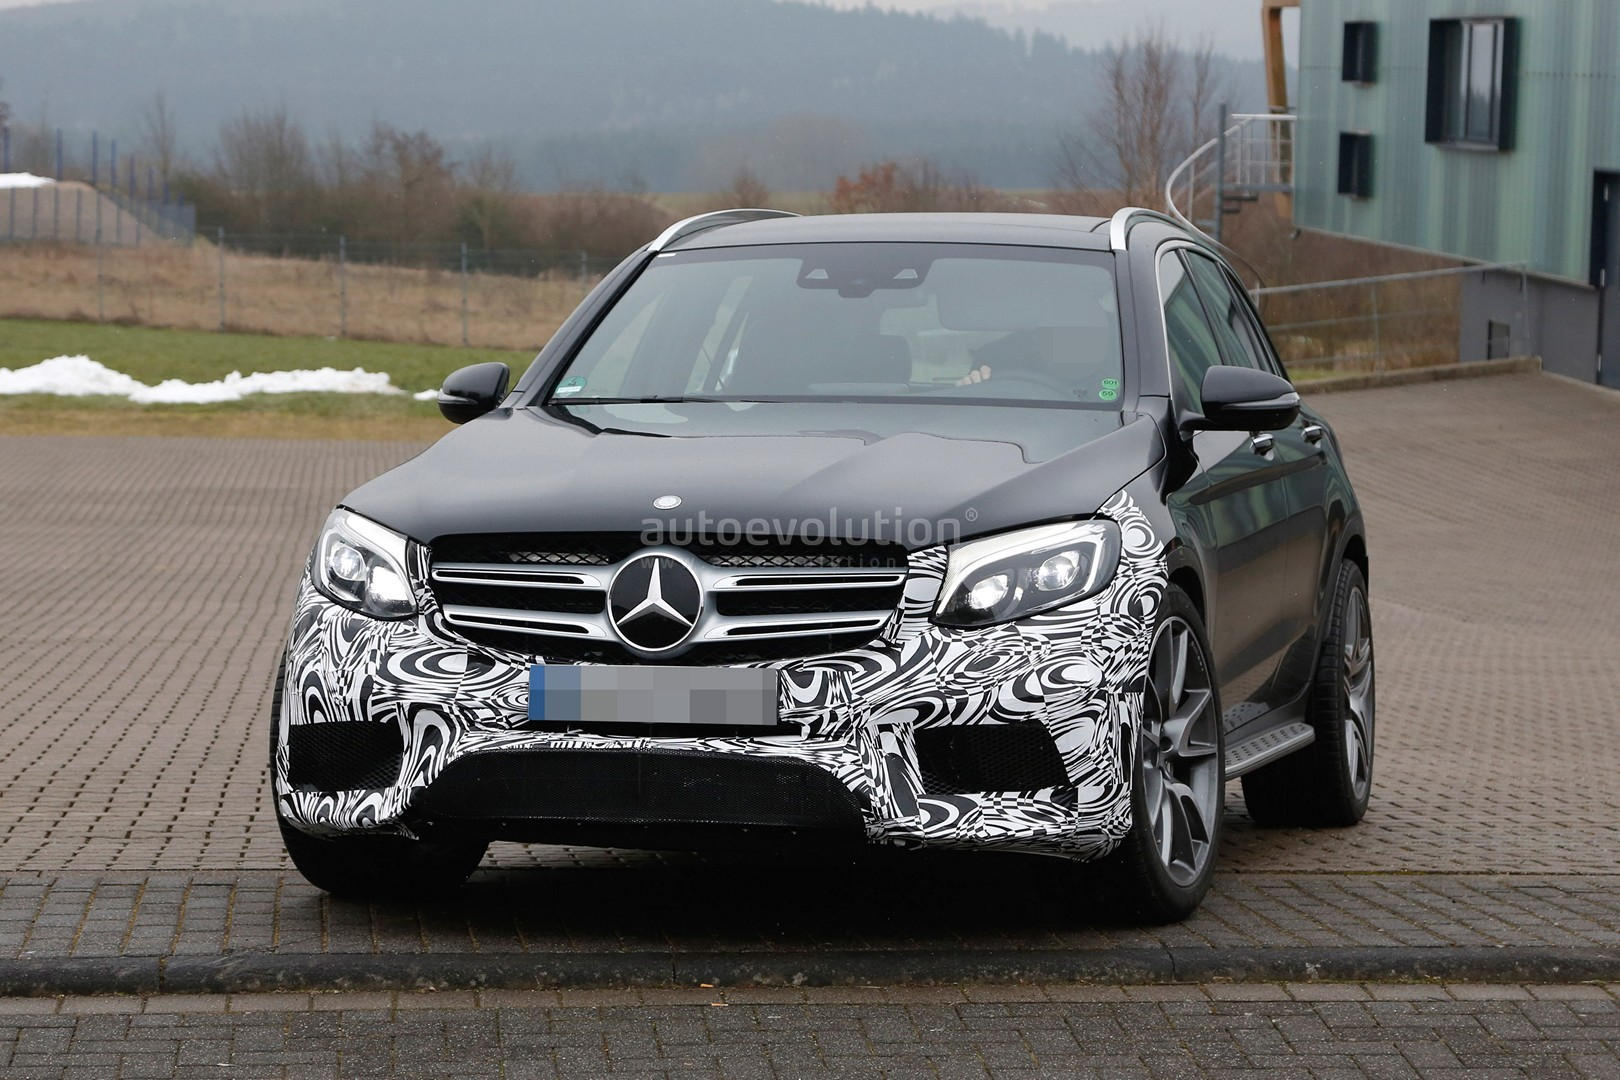 Mercedes C63 Amg Coupe 2017 >> Mercedes-AMG GLC 63 Test Prototype Seen for the First Time - autoevolution